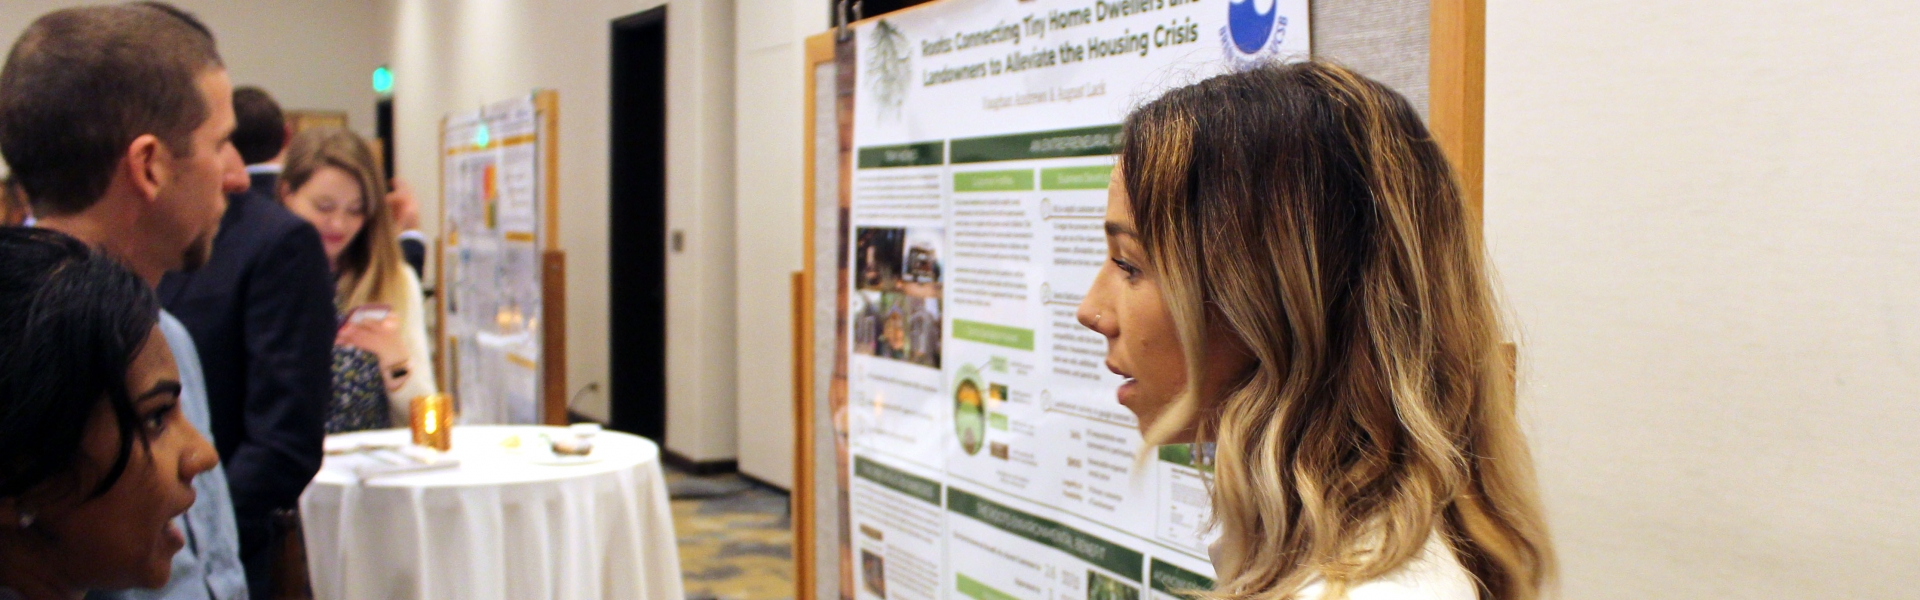 Woman standing by poster discussing with another woman